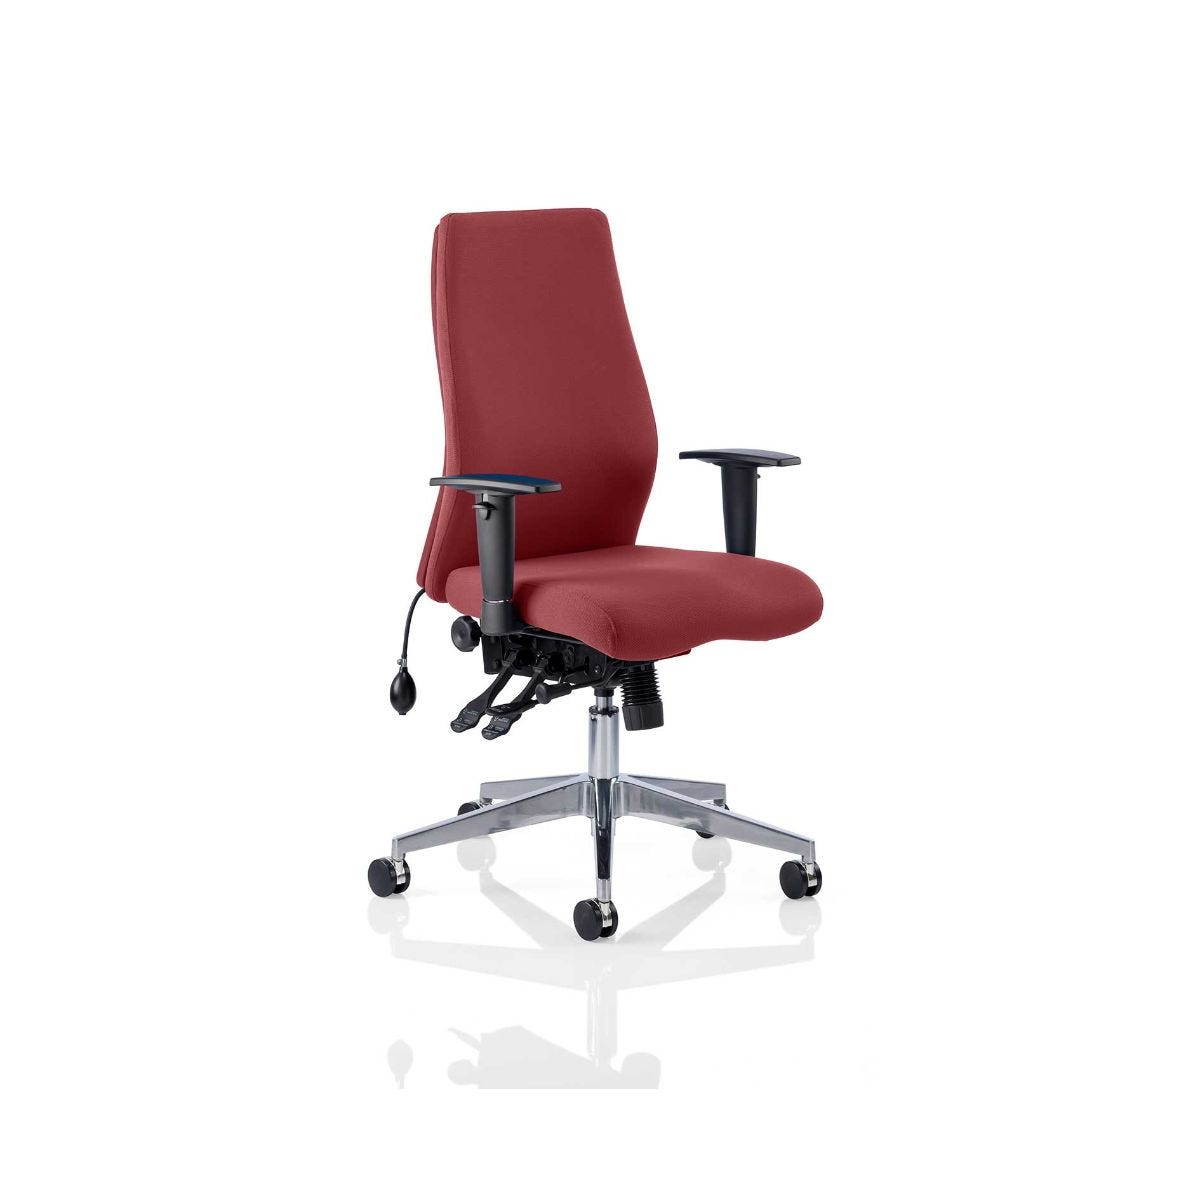 Onyx Bespoke Office Chair, Ginseng